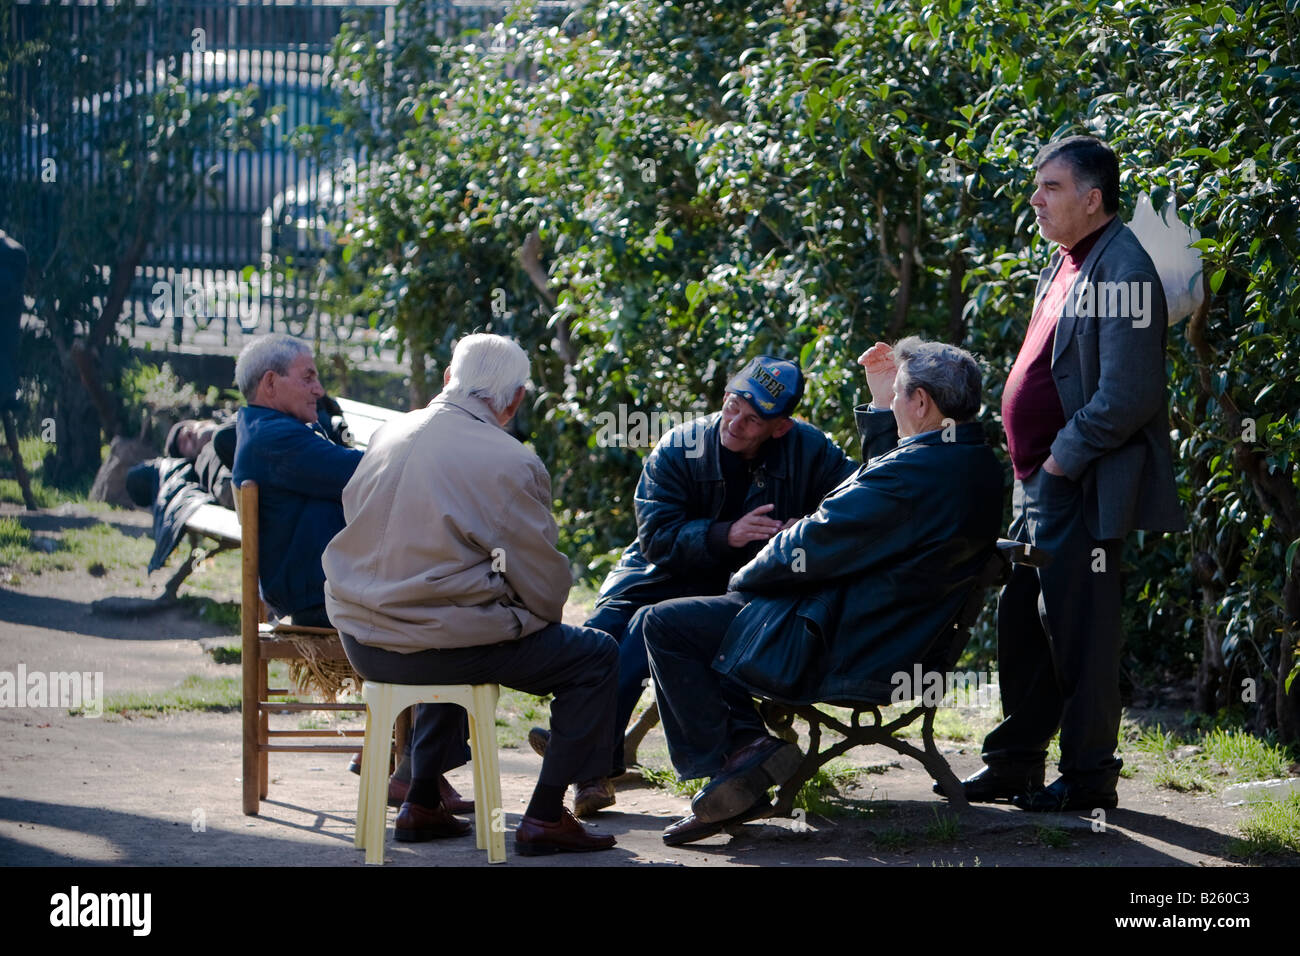 Elderly people talk in a park in Catania, Sicily, Italy - Stock Image